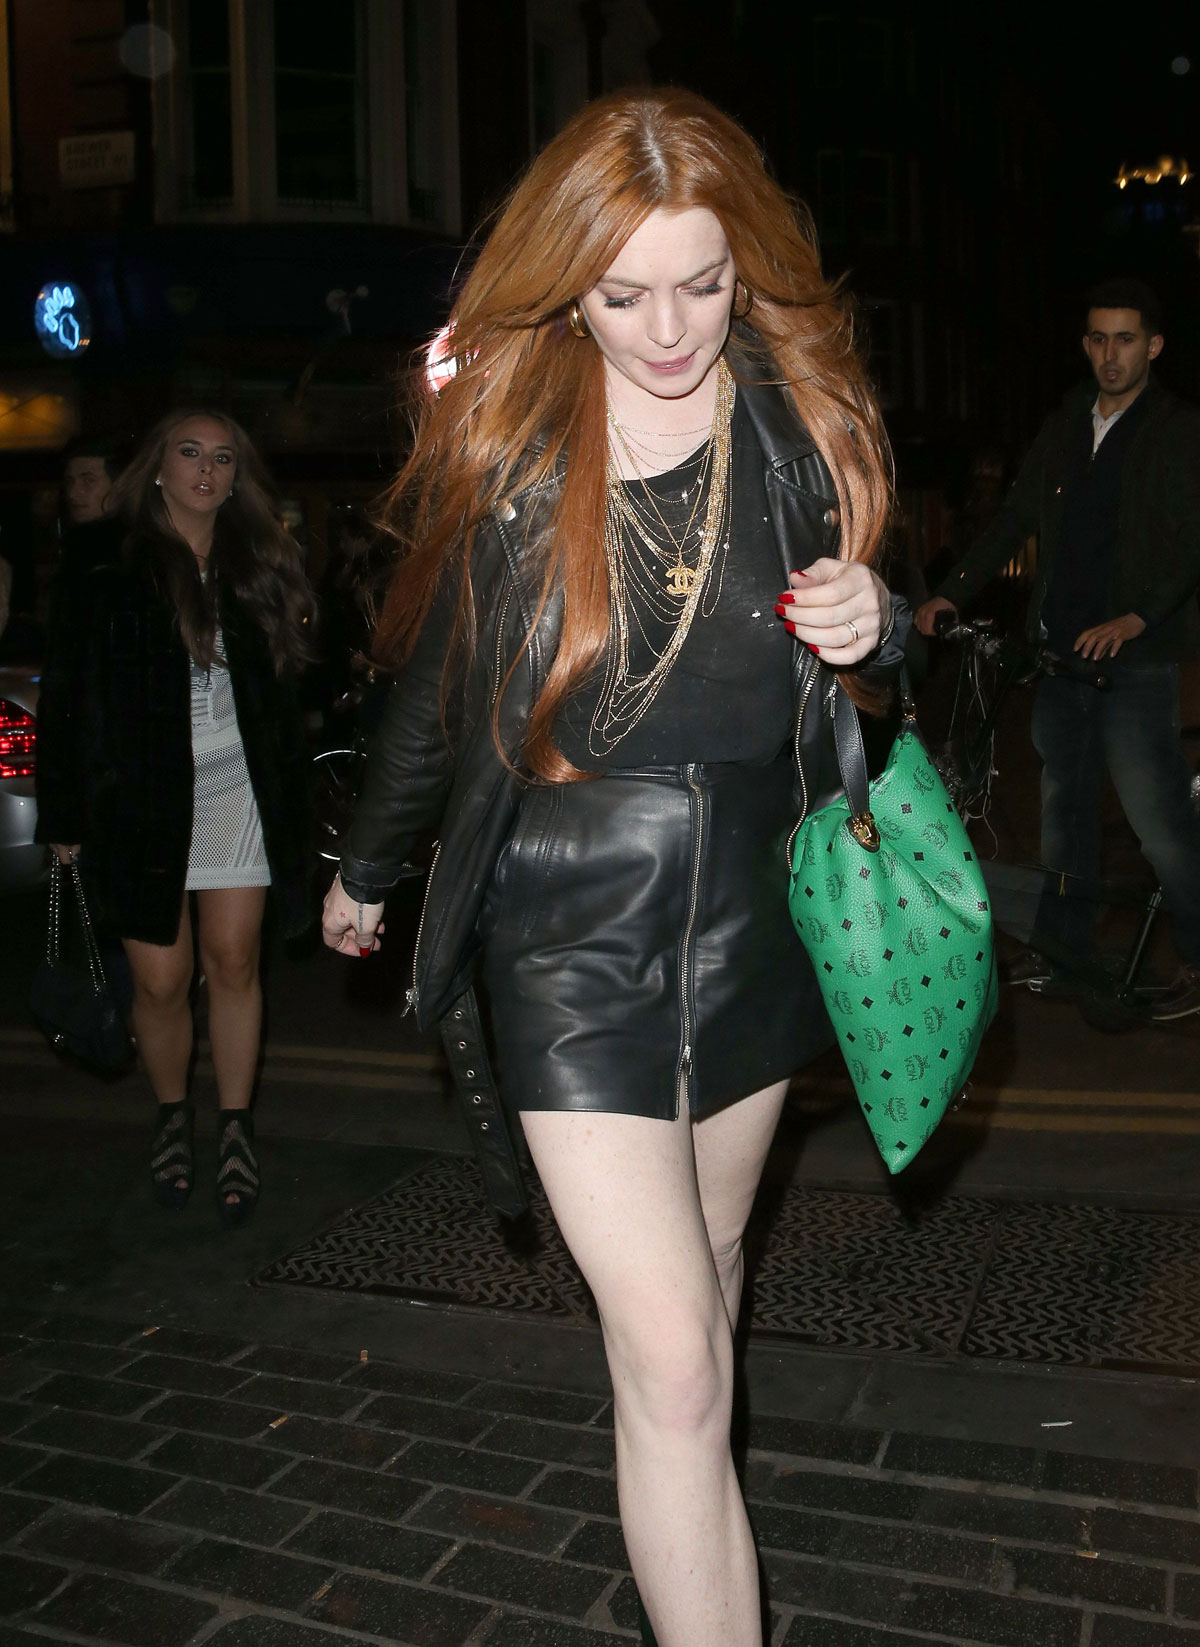 Lindsay Lohan leaving the Firehouse Club